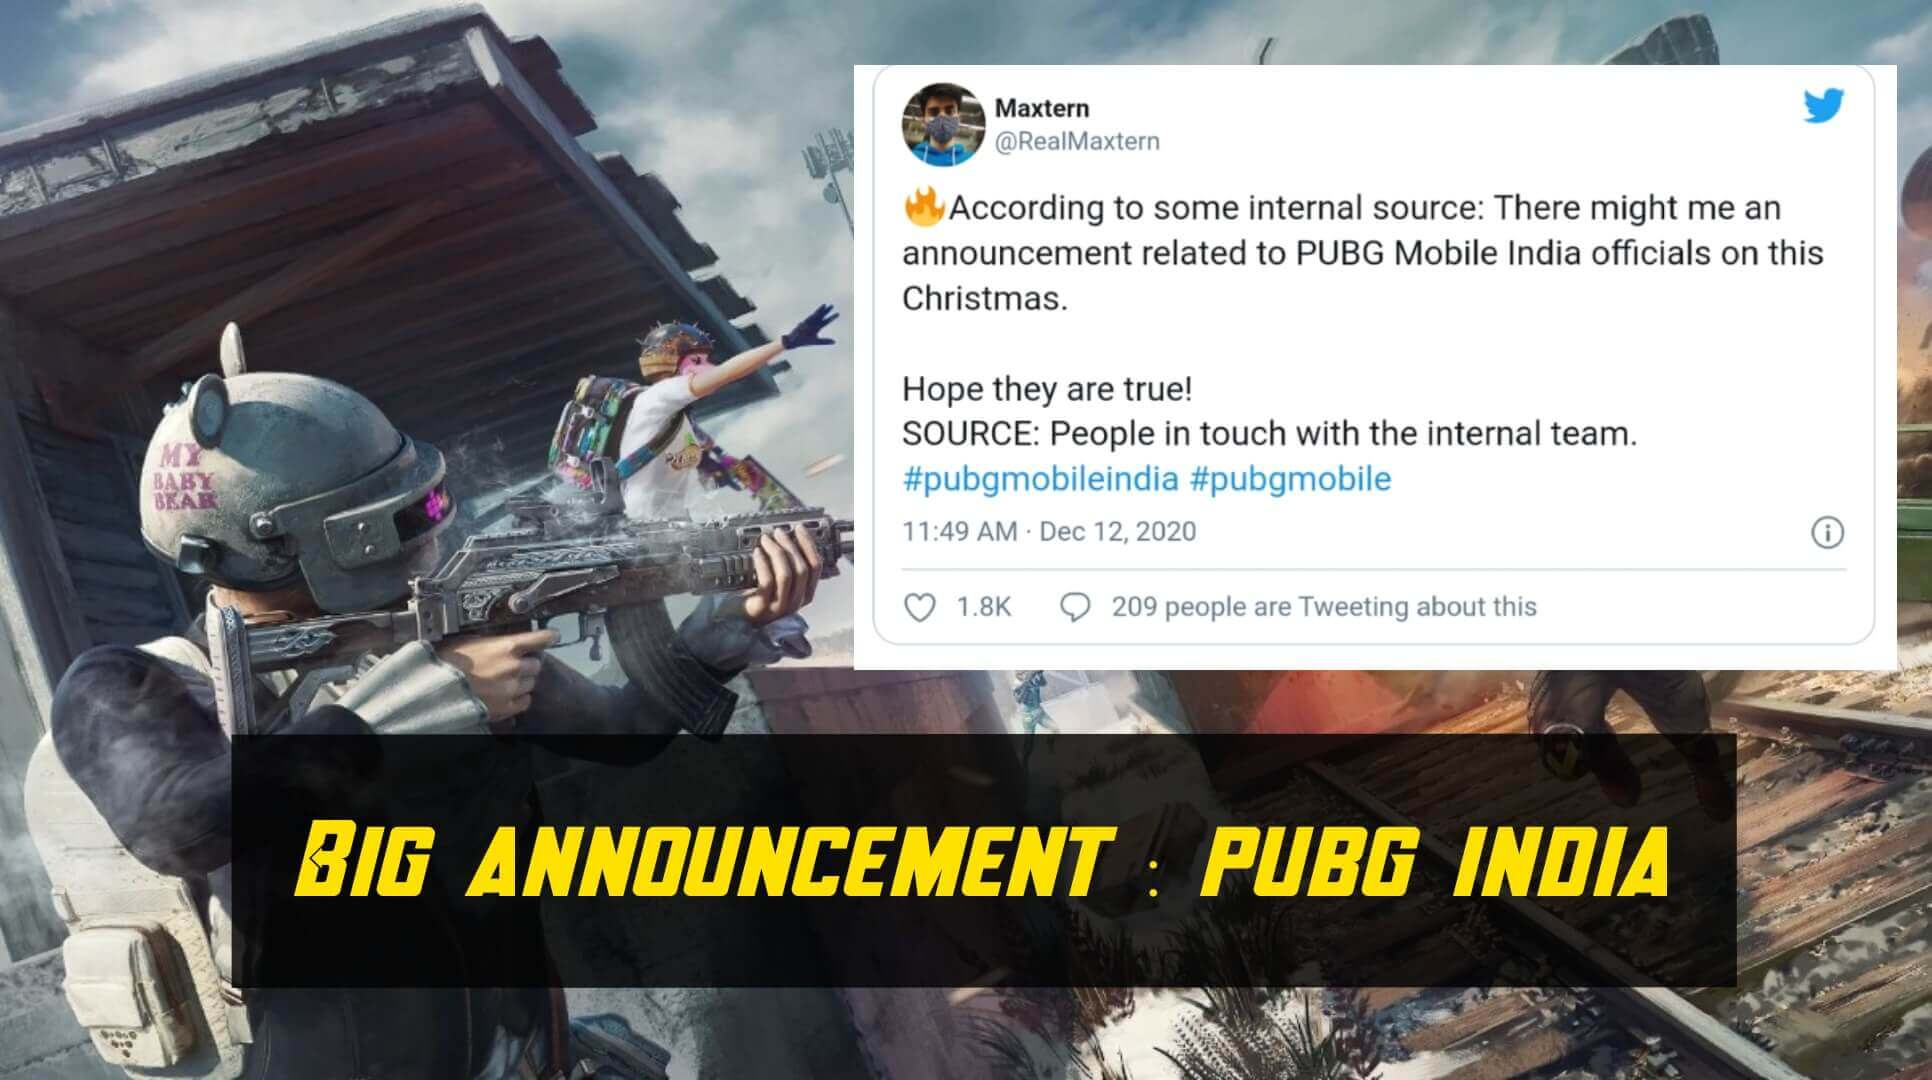 Big announcement of PUBG mobile on Christmas